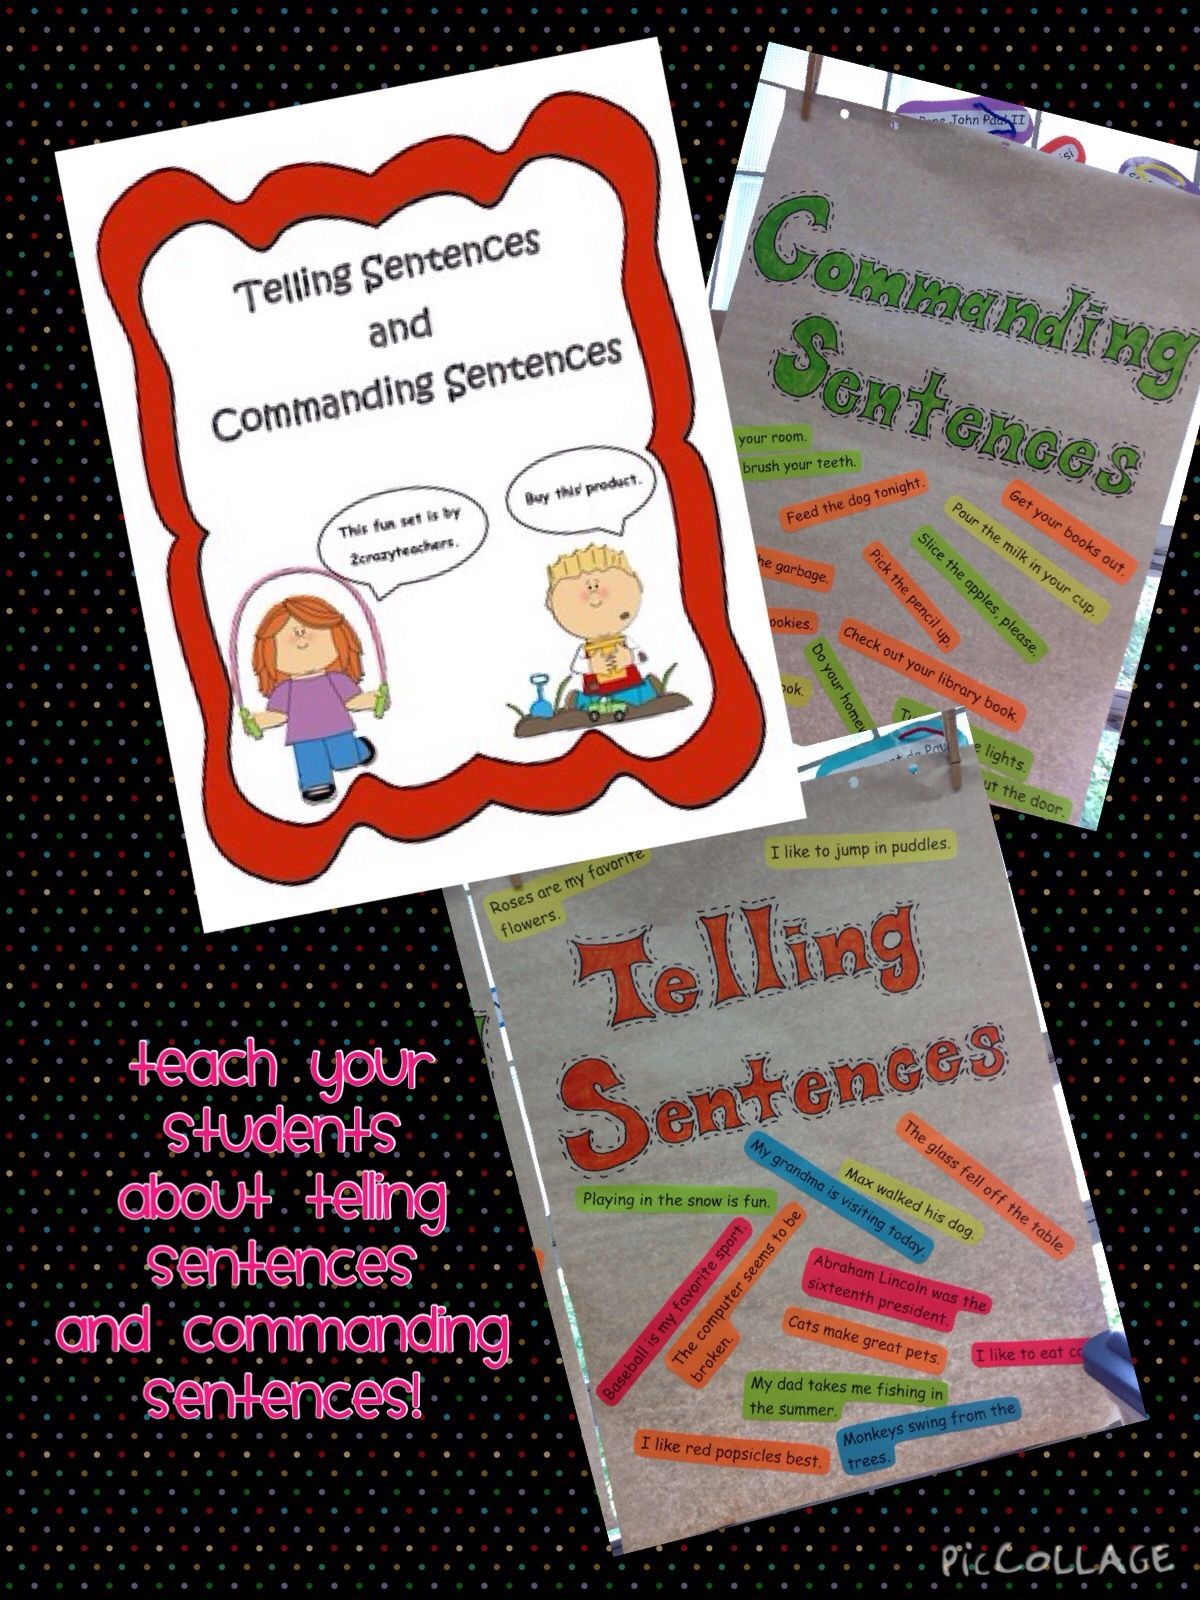 Need Some Reinforcement Activities For Your Students When